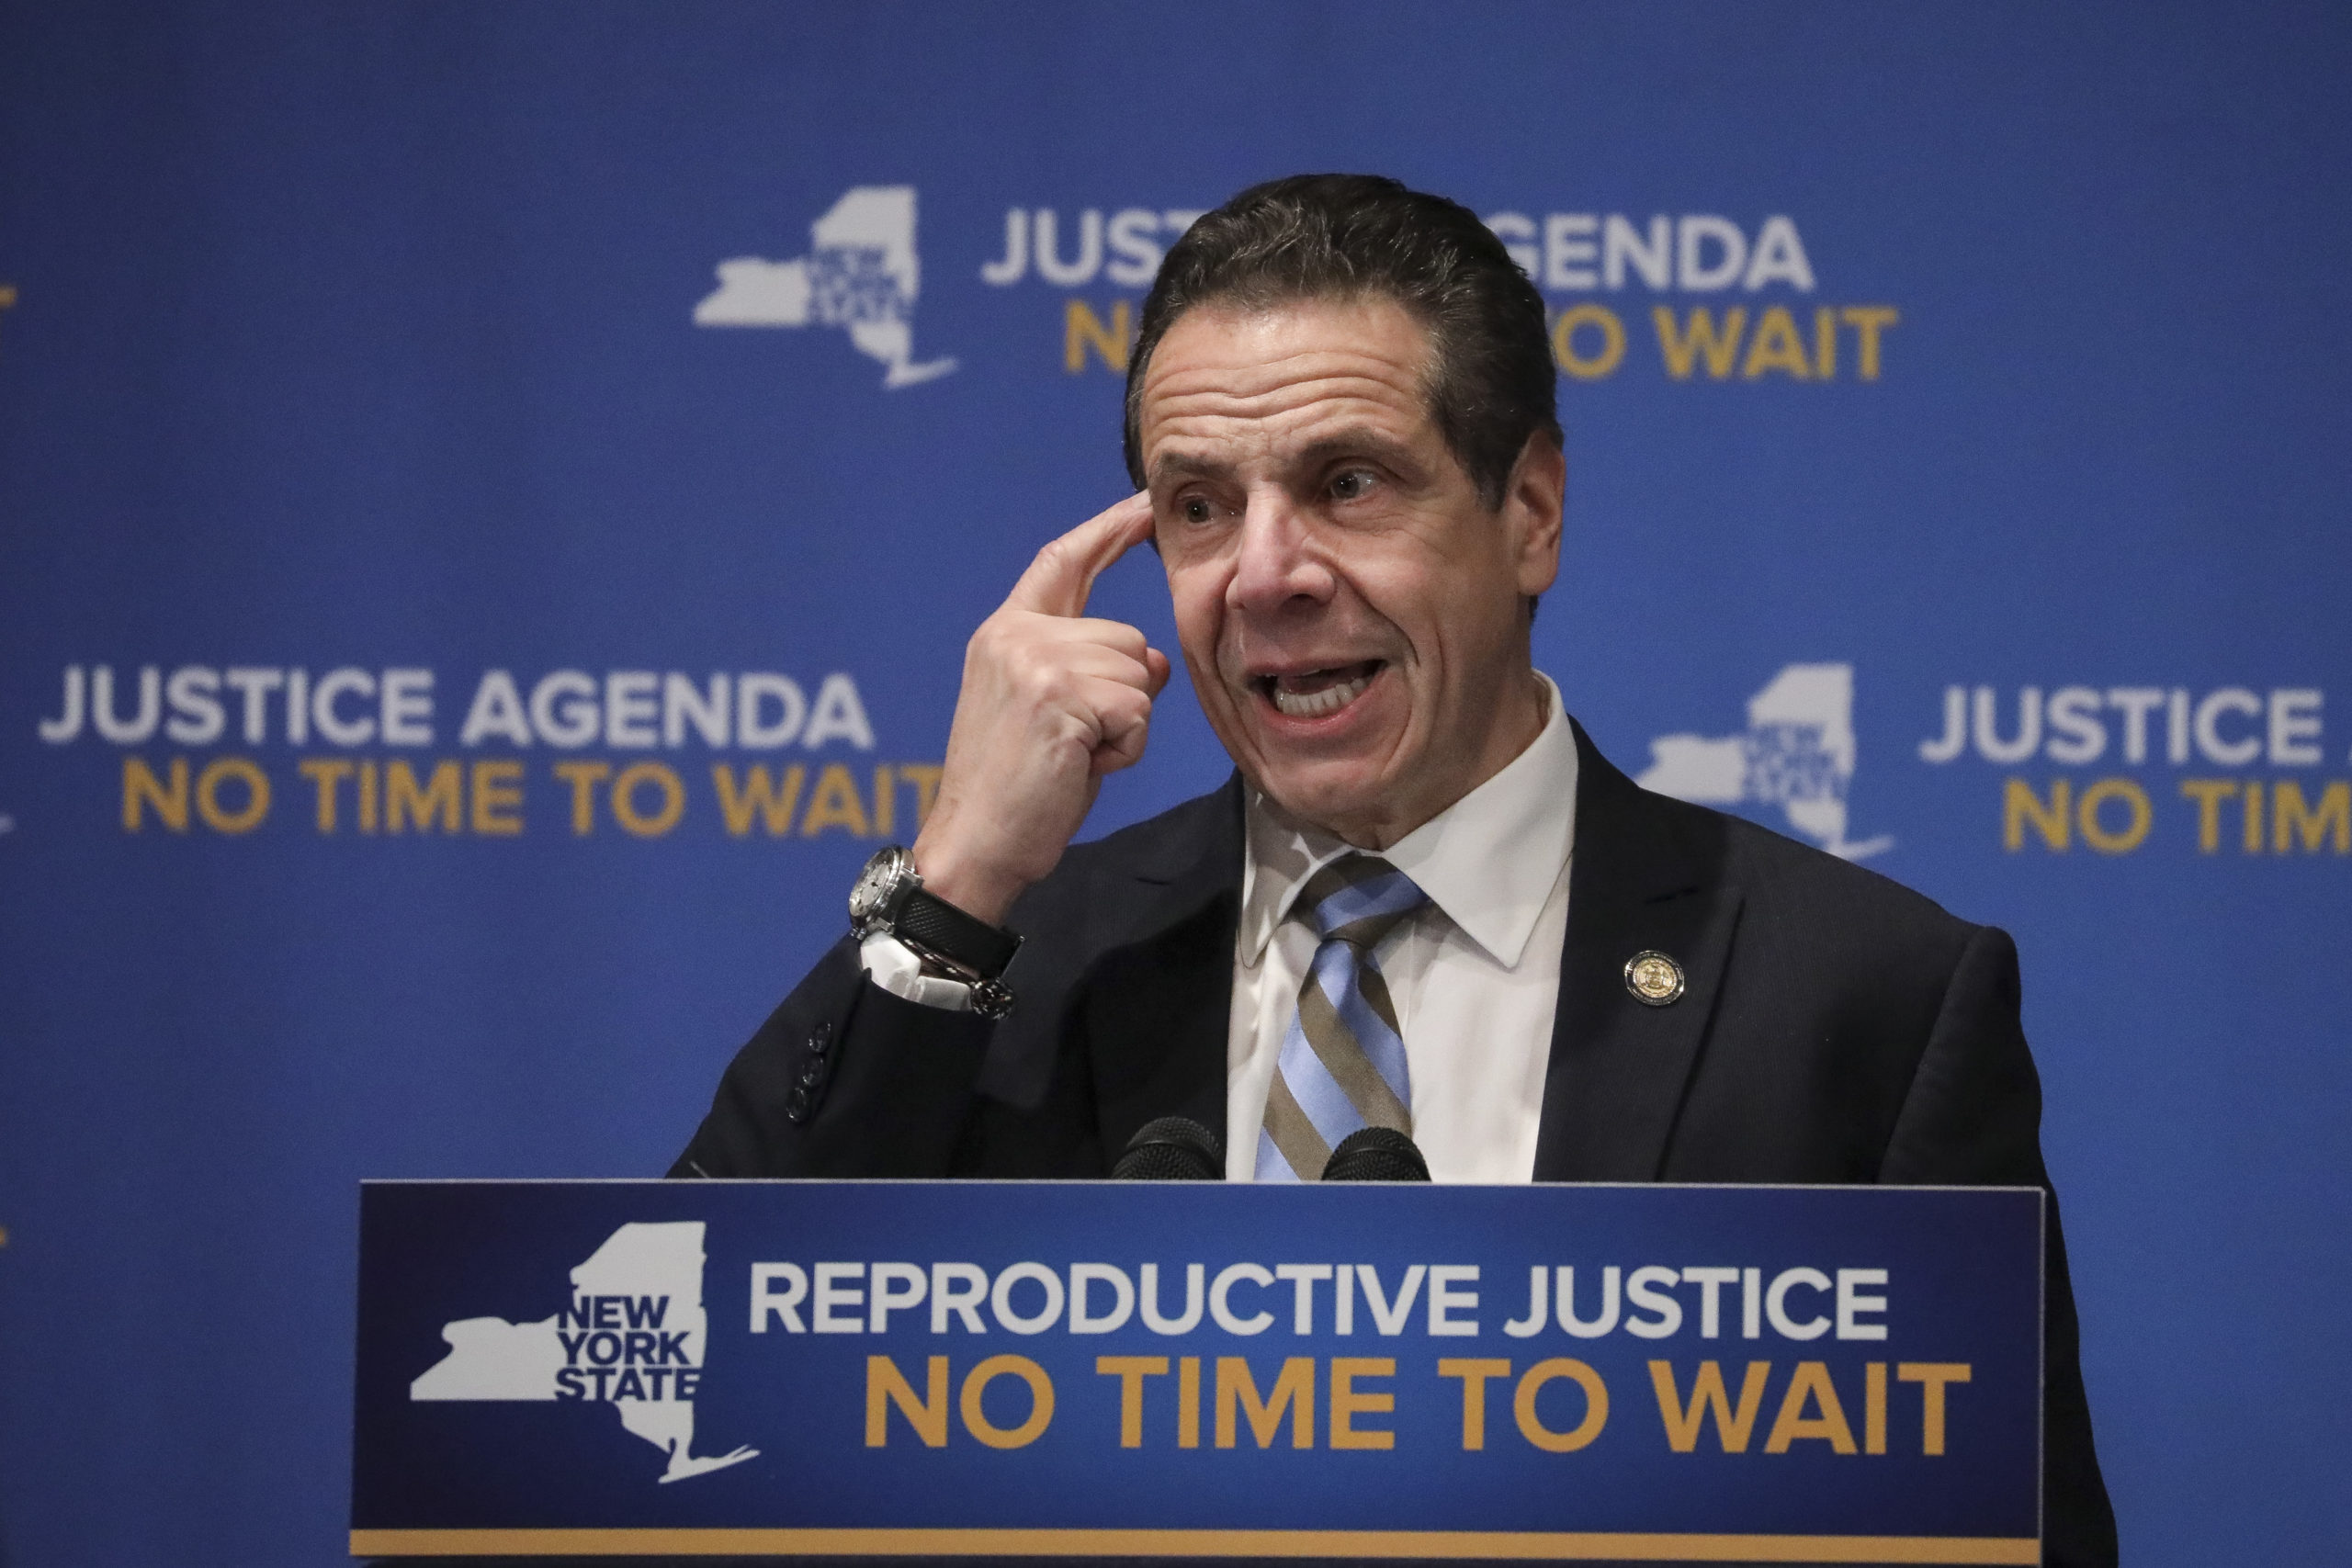 NEW YORK, NY - JANUARY 7: New York Governor Andrew Cuomo speaks about reproductive rights at Barnard College, January 7, 2019 in New York City. (Photo by Drew Angerer/Getty Images)